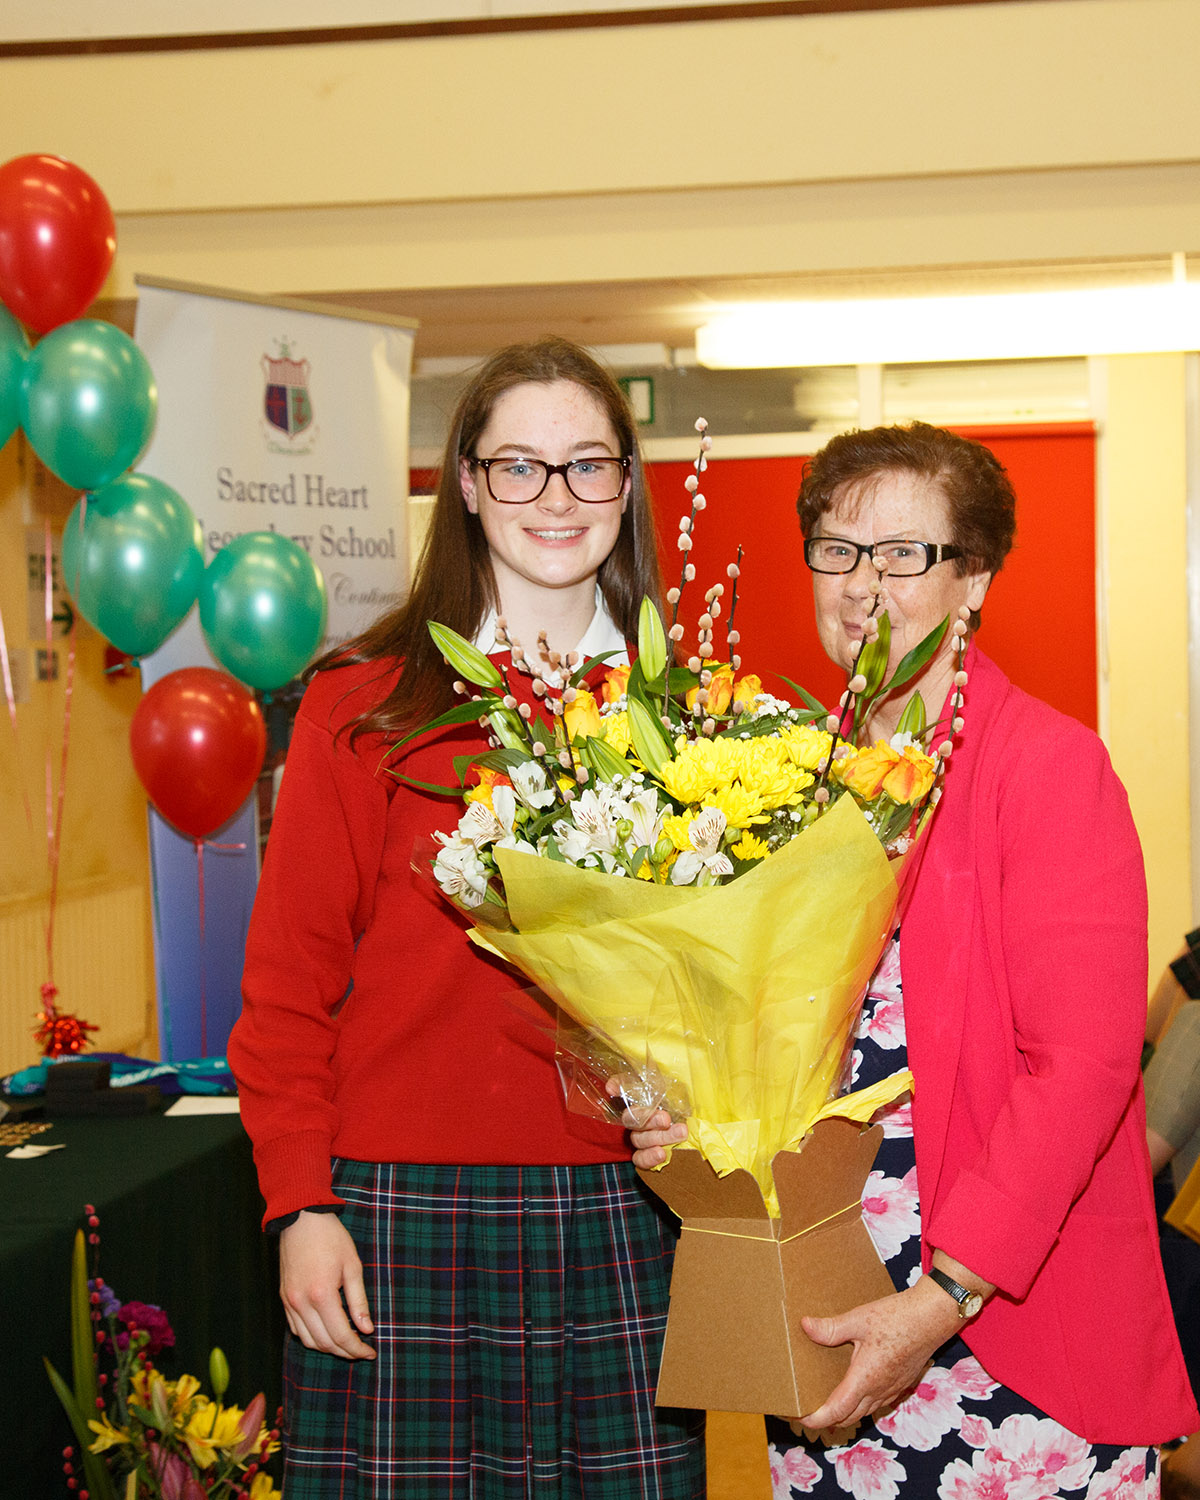 Chairperson of the Student Council Meadhbh Coomey makes a presentation to Sr Mary